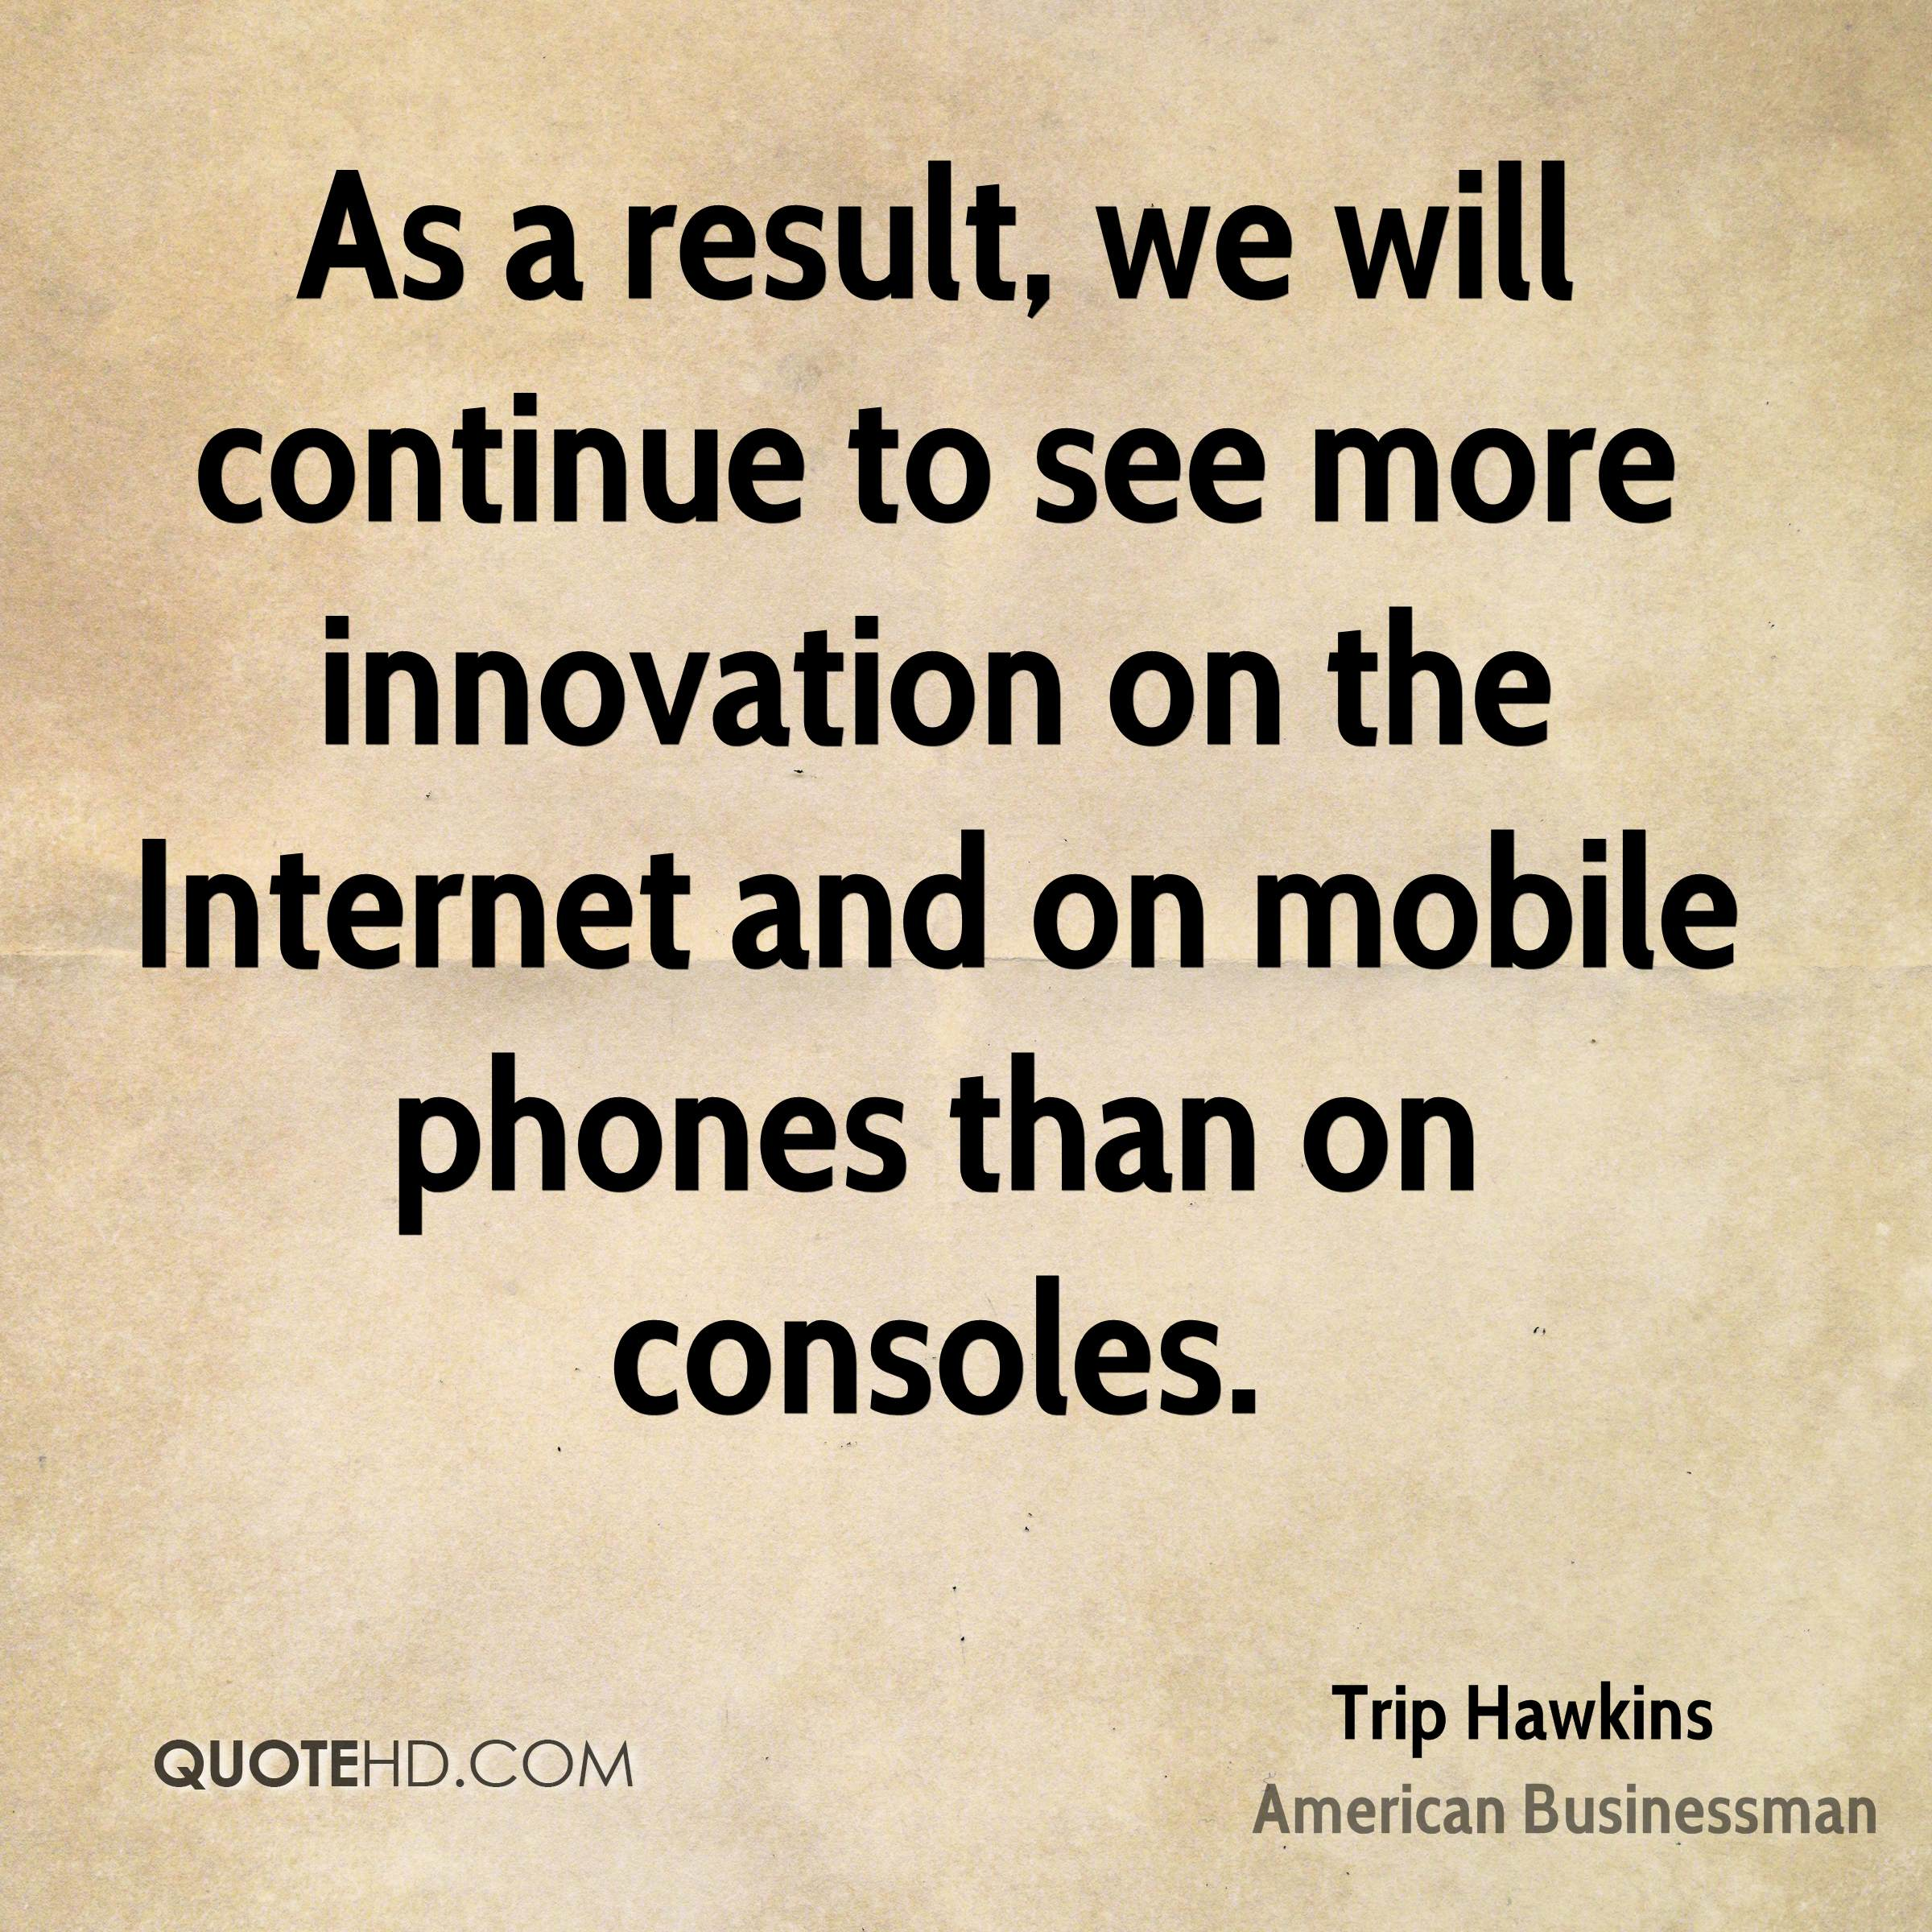 As a result, we will continue to see more innovation on the Internet and on mobile phones than on consoles.